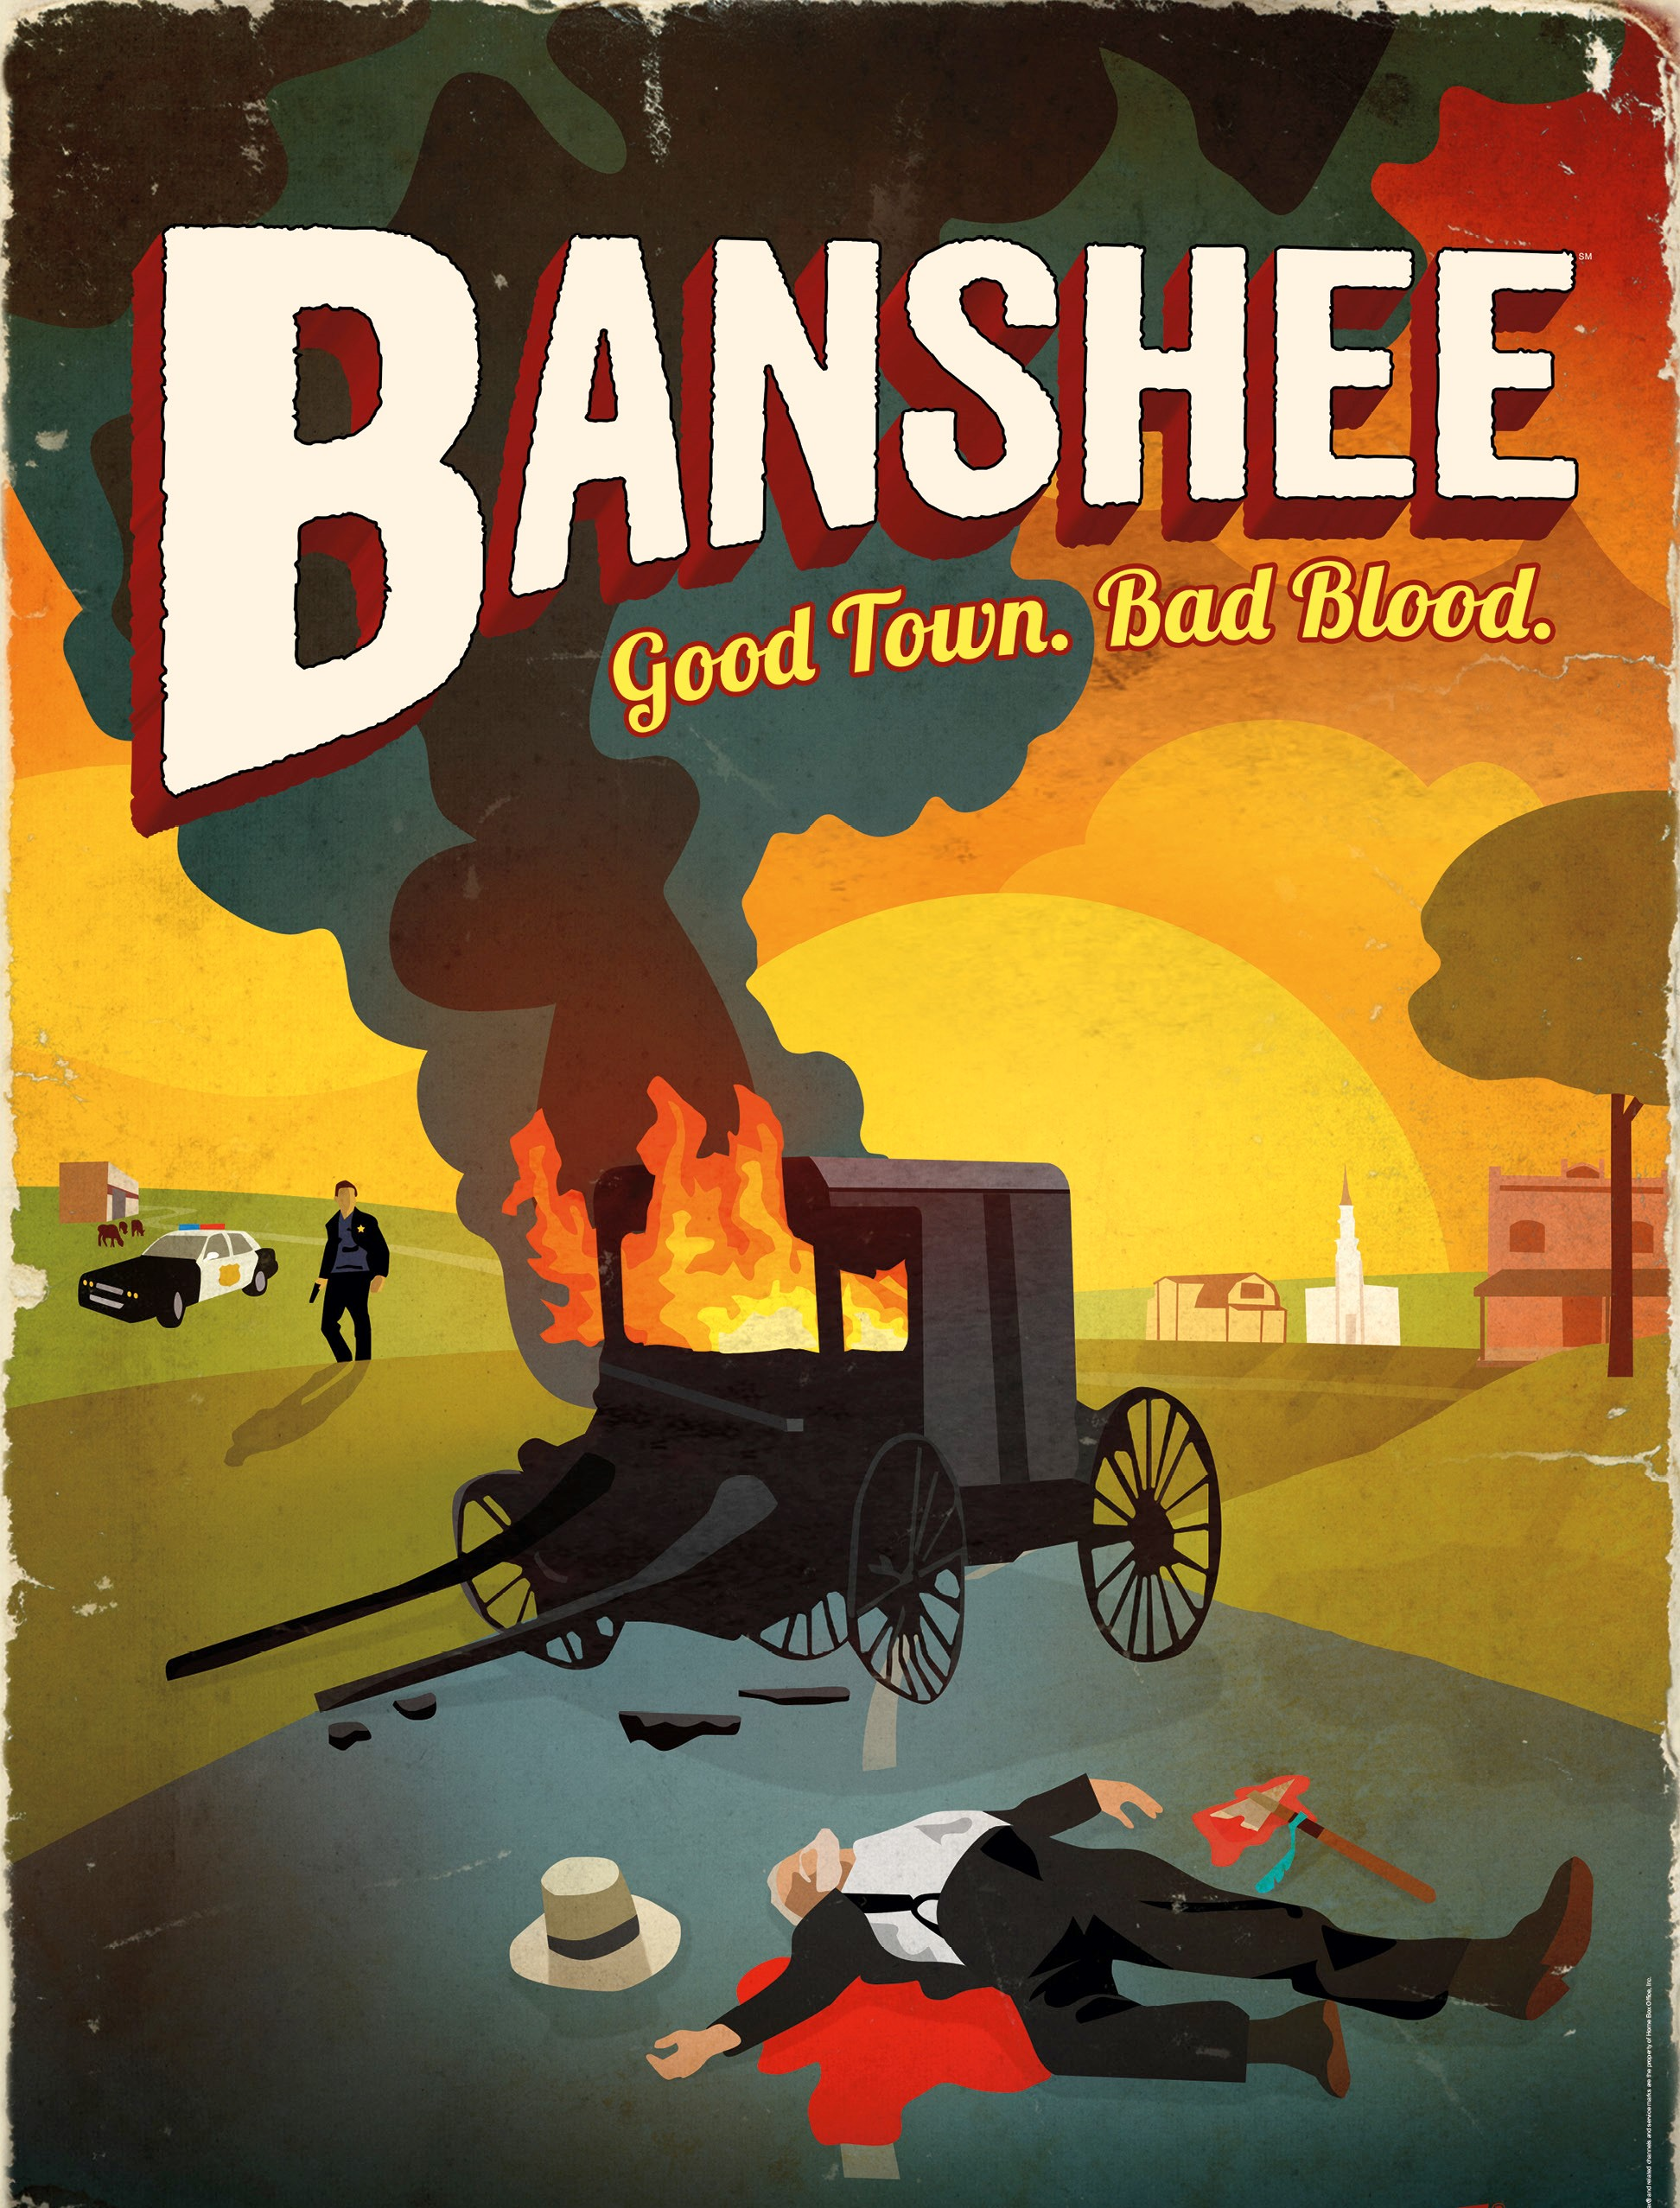 Welcome to Banshee! Nice to meet you!